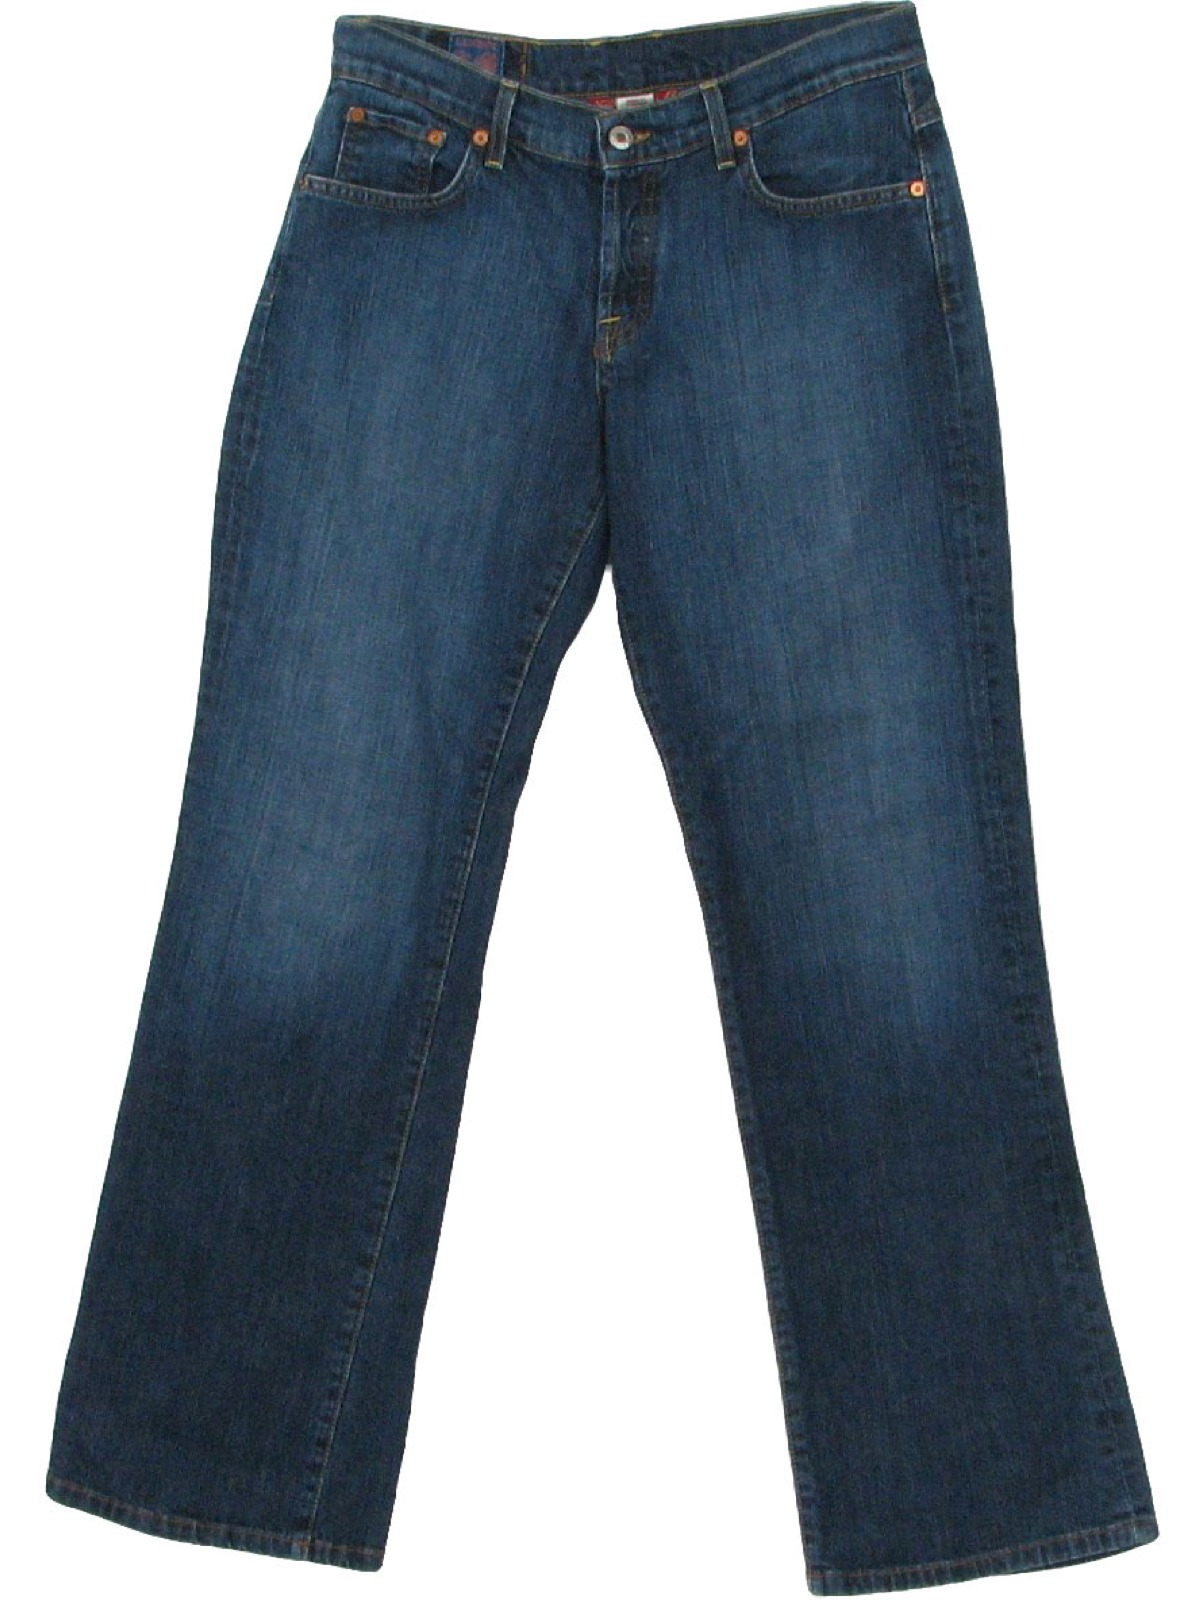 Flared Pants / Flares 90s (70s inspired) -Lucky Brand designer- Womens dark blue cotton and ...